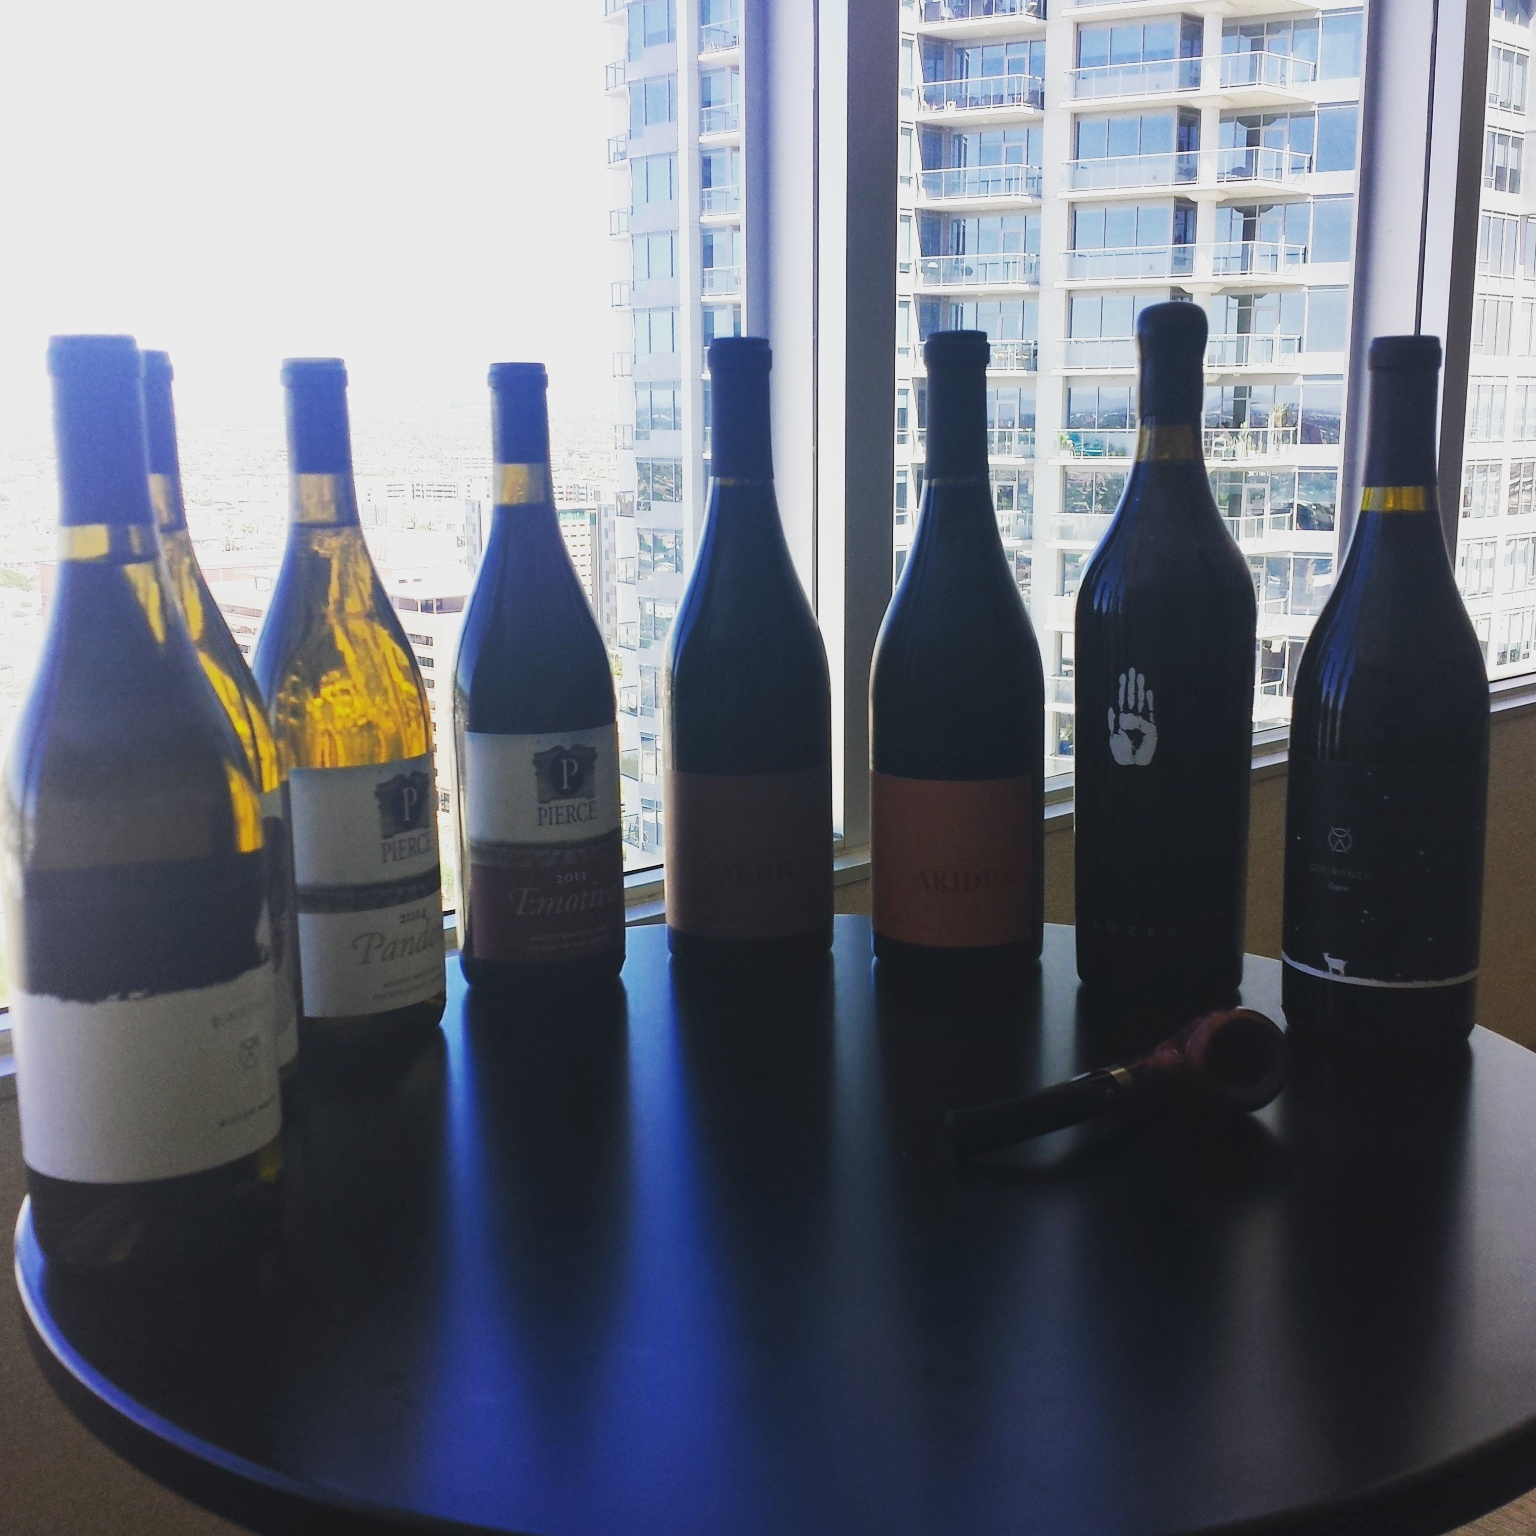 A selection of some of the wines explored in this class.